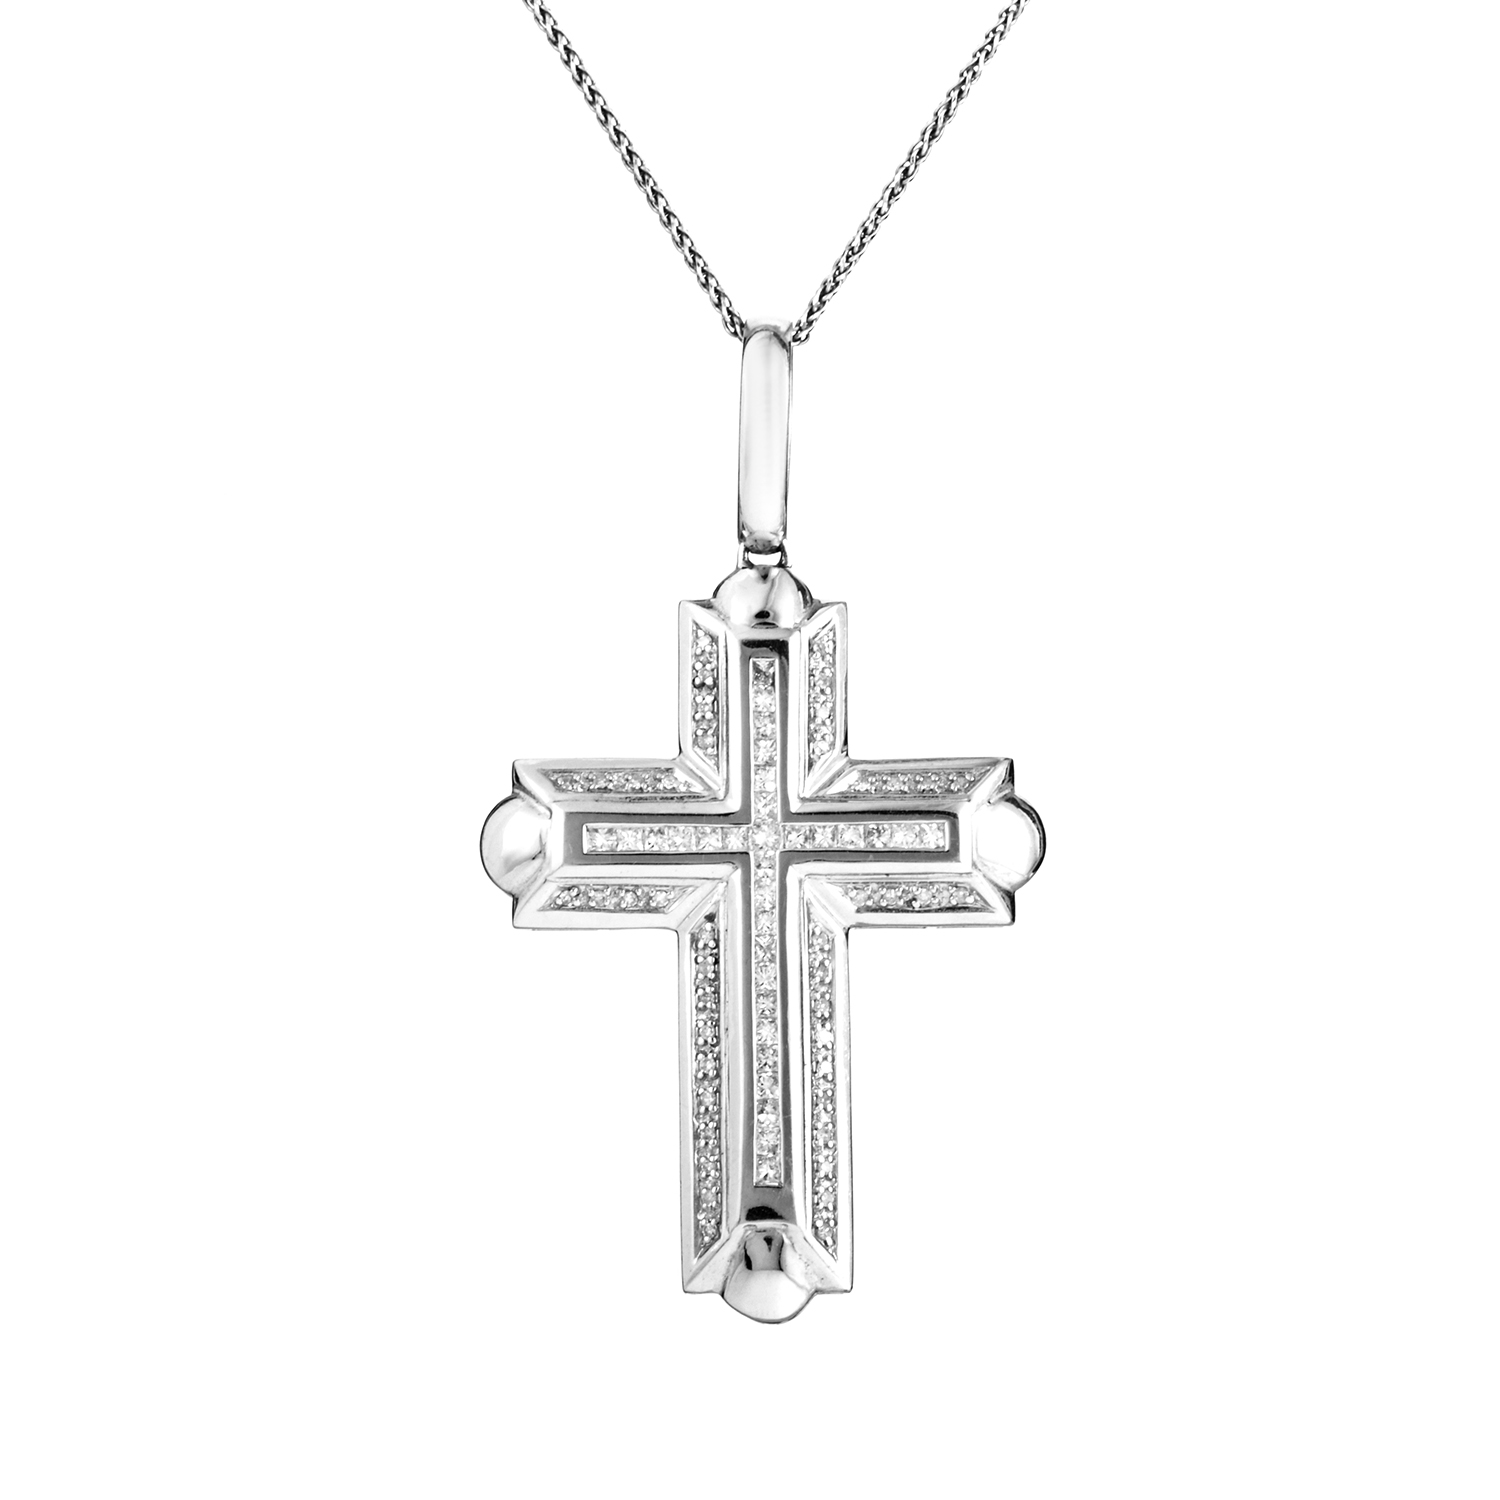 14K White Gold Diamond Thick Cross Pendant Necklace IO-24-031616